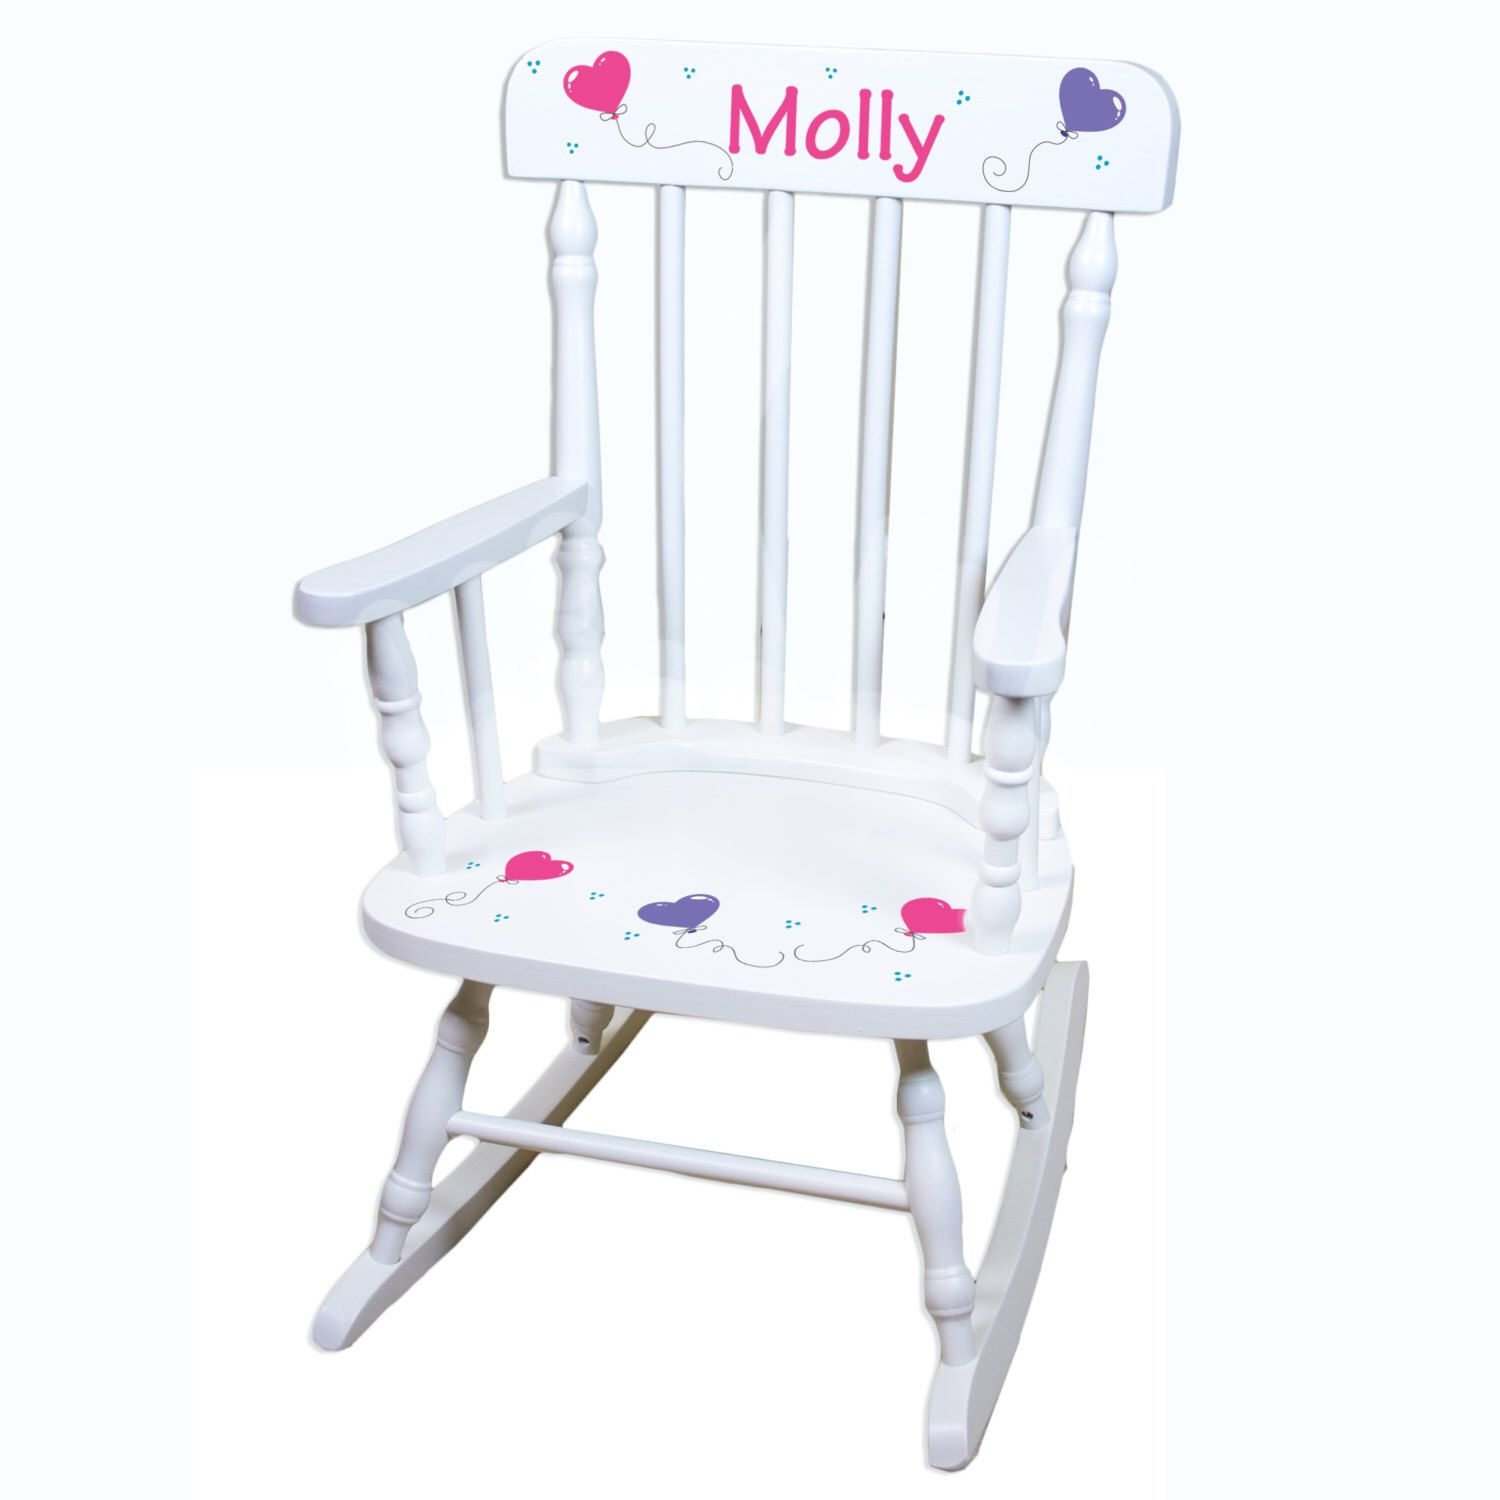 Hand Painted Personalized Childs White Spindle Rocking